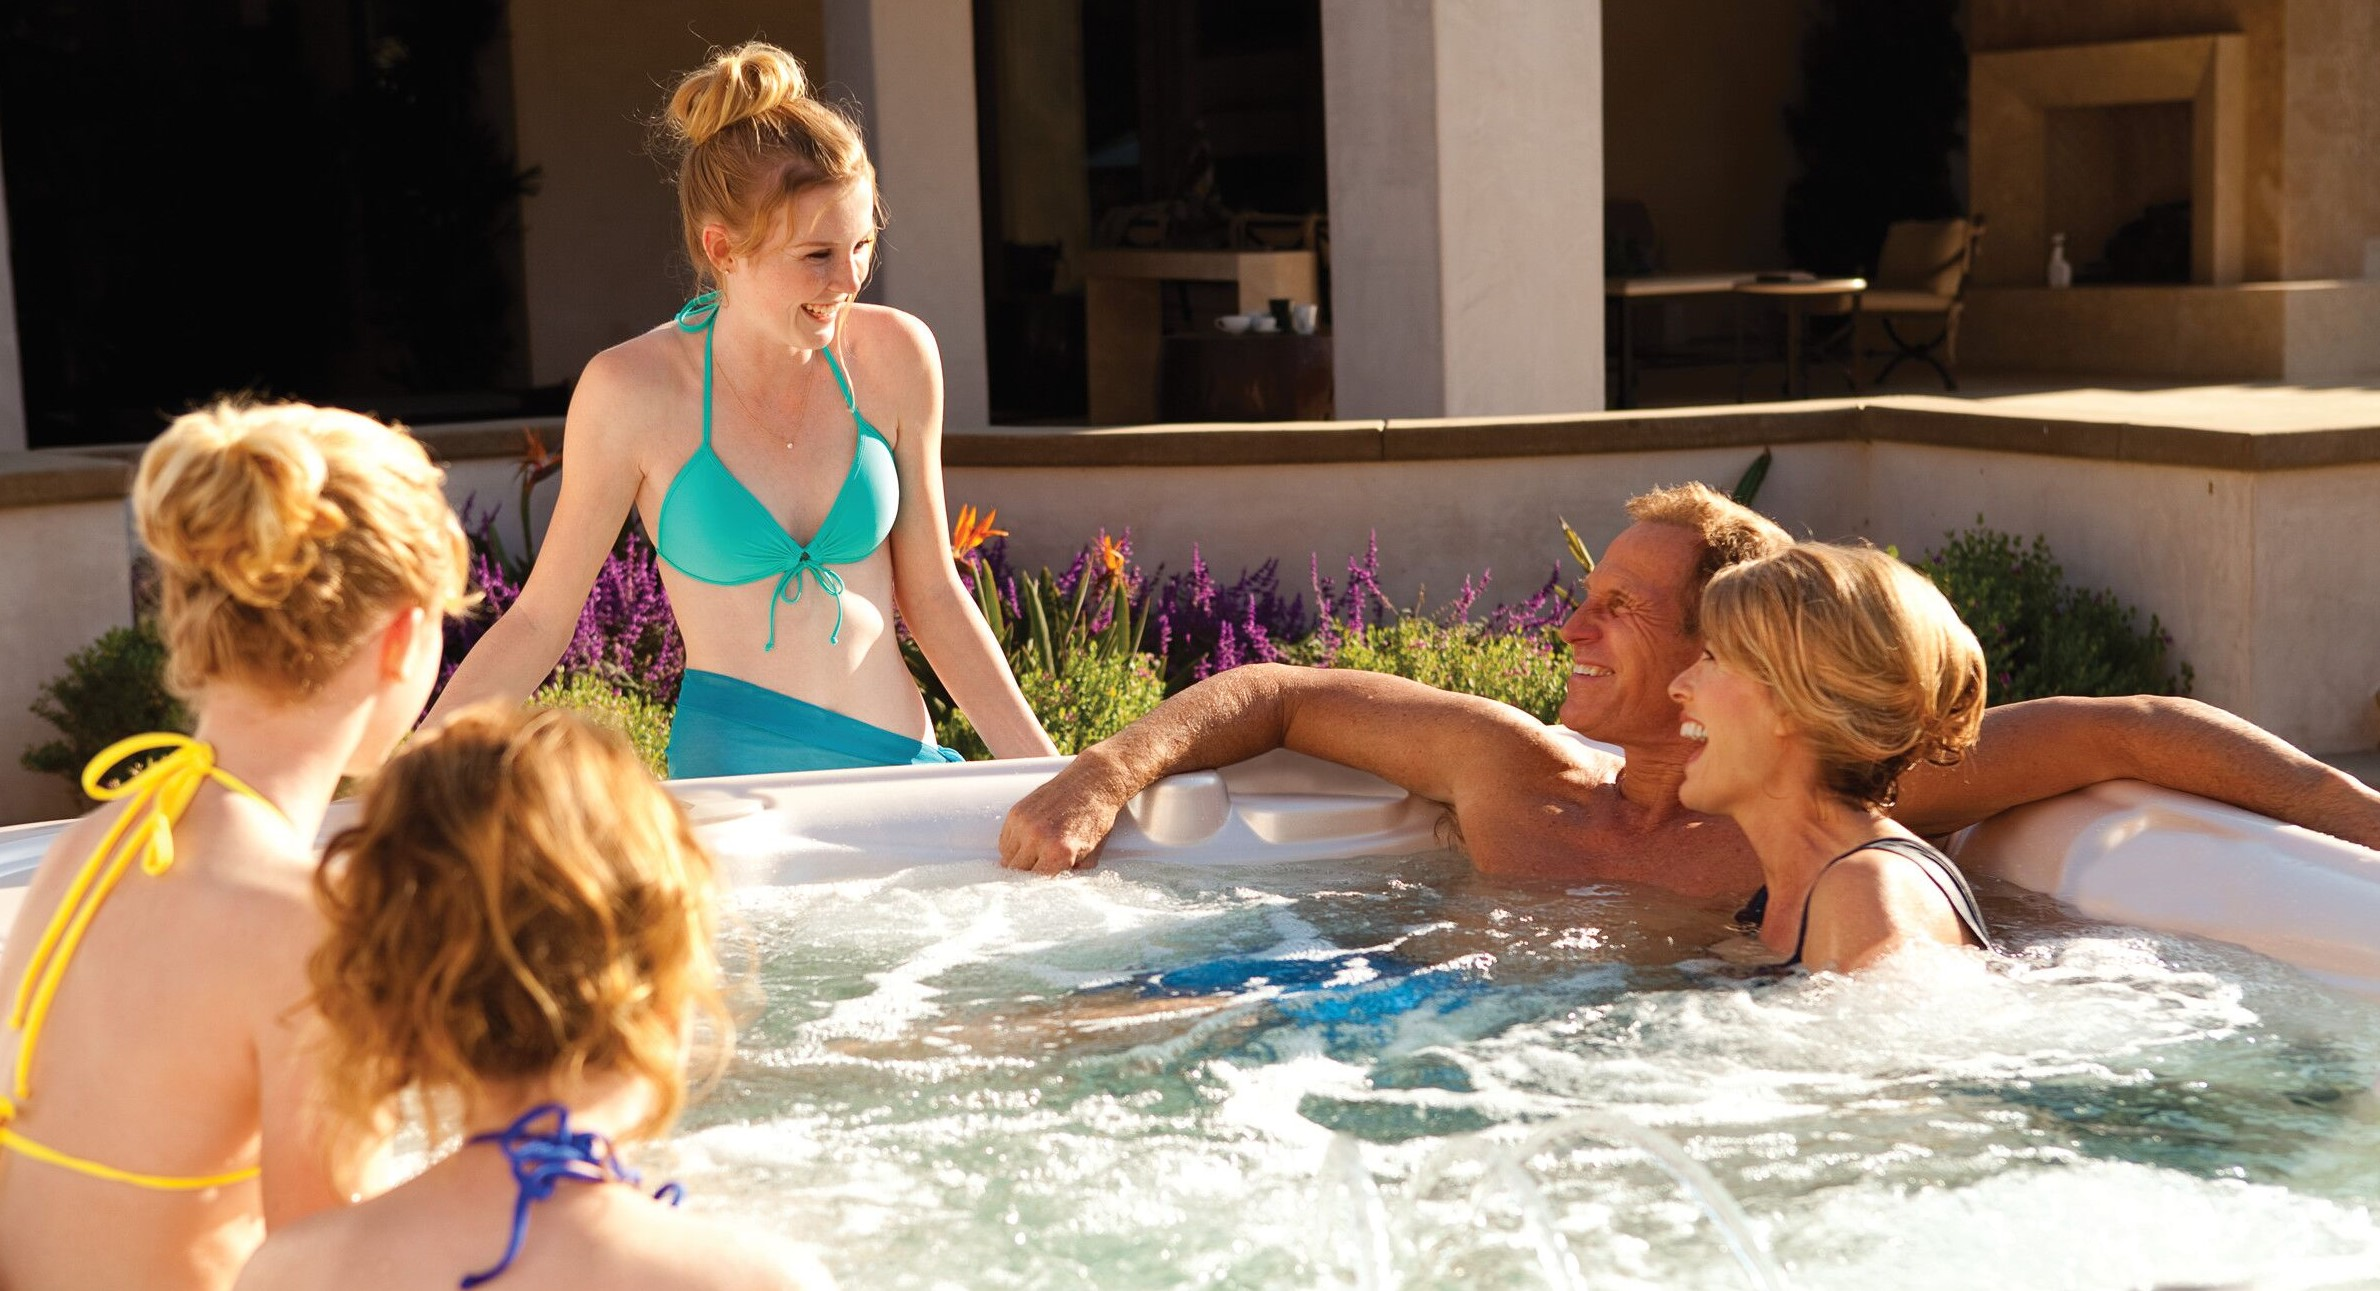 Owning a Hot Tub May Decrease Your Water Usage